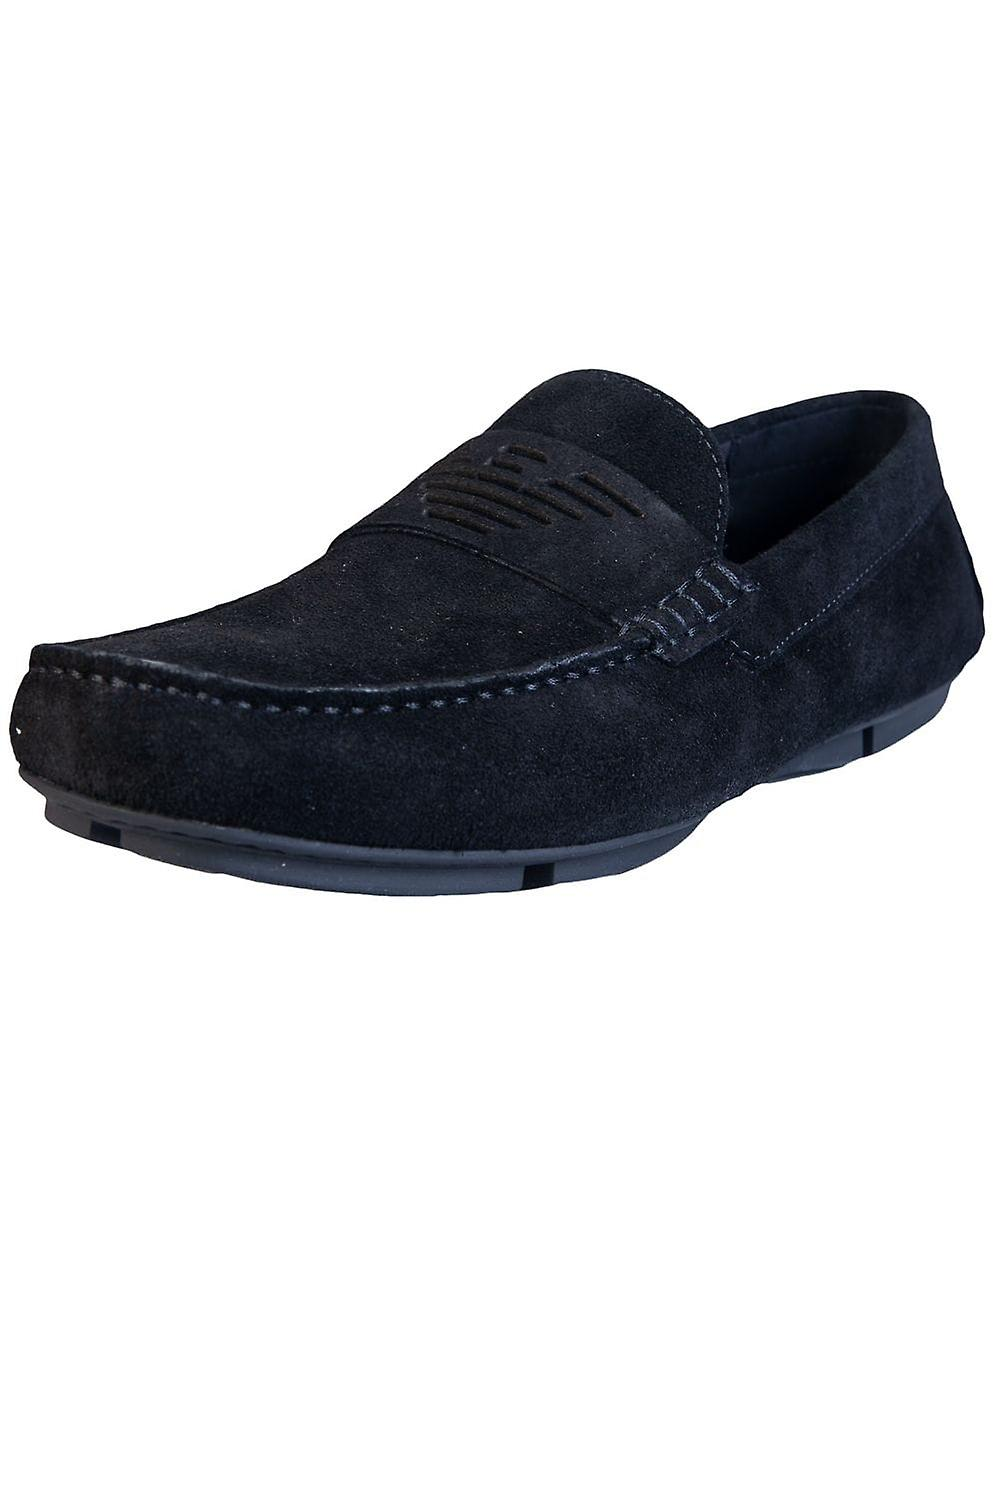 Emporio Armani Loafers Shoes X4B113 XF188